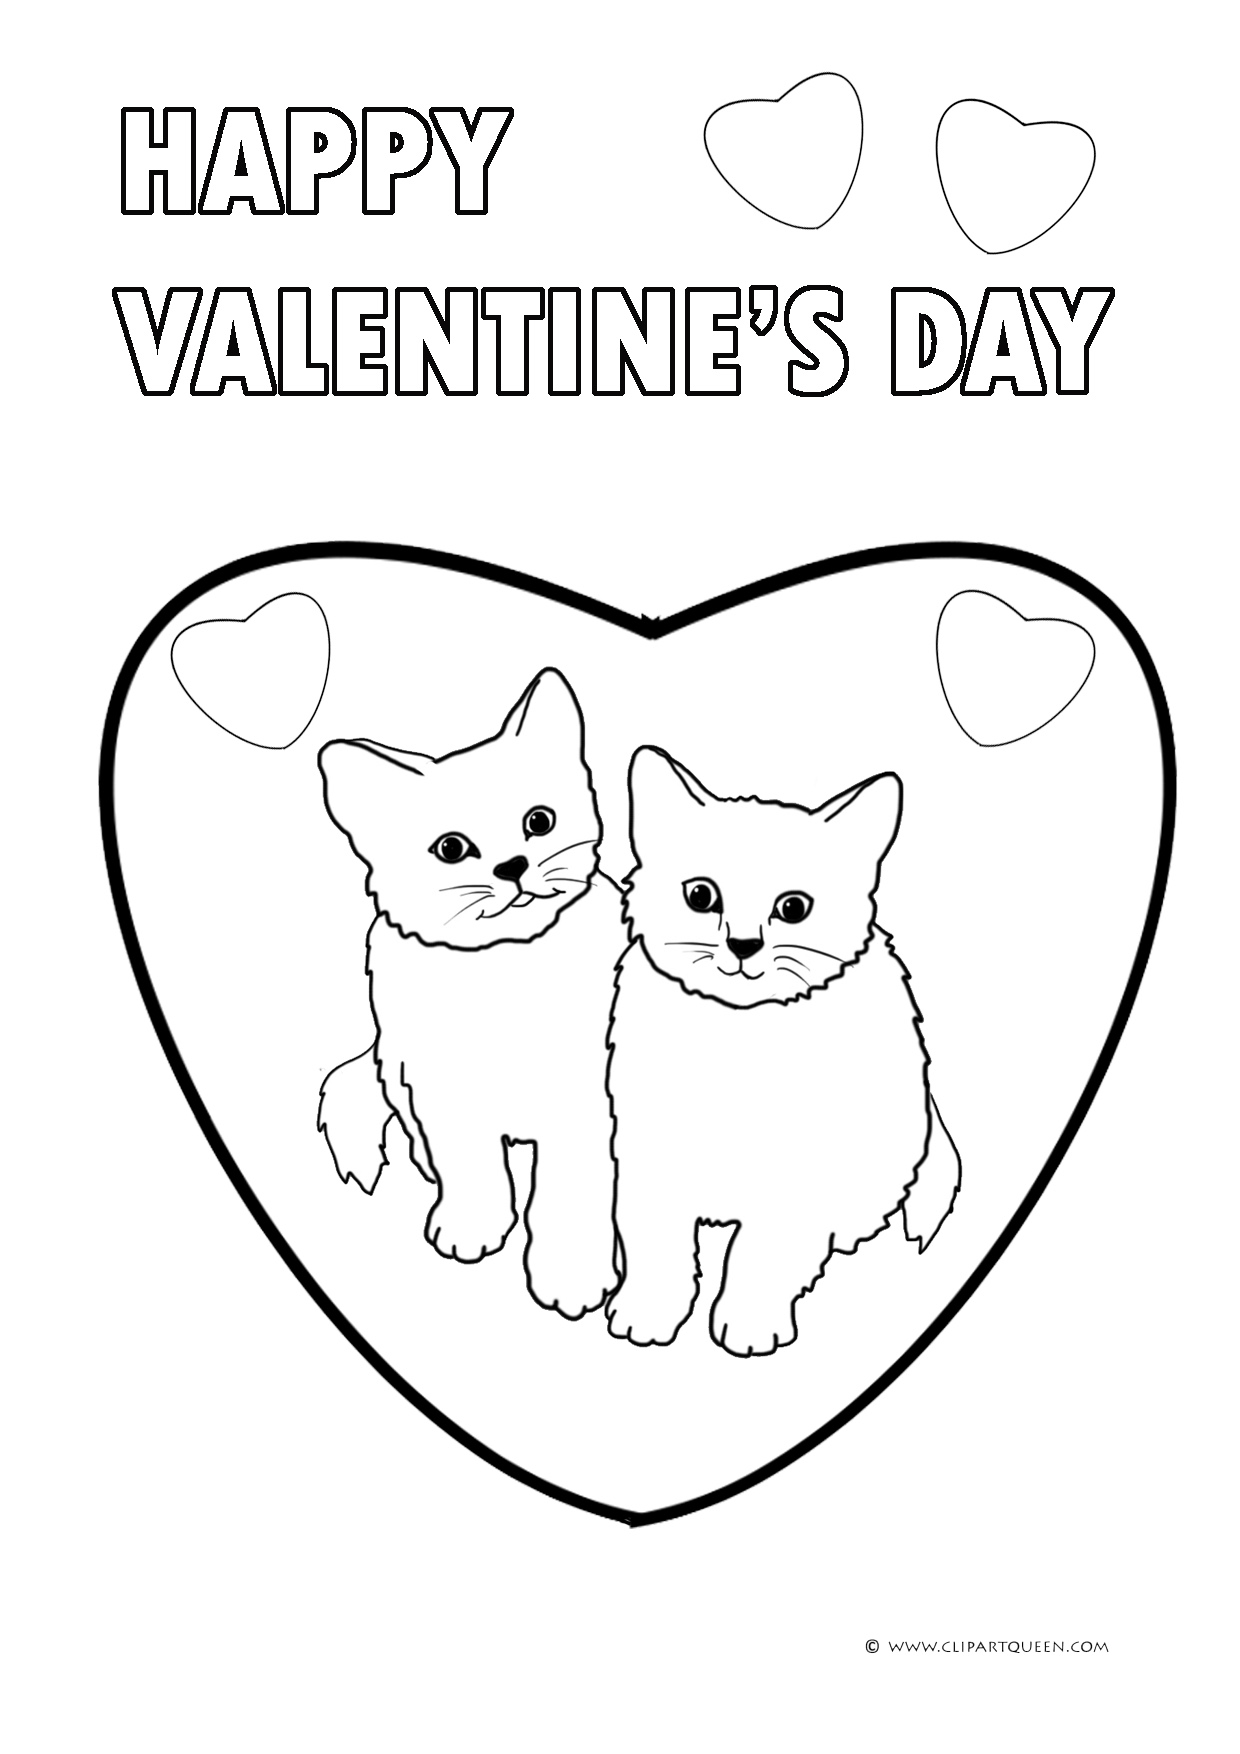 Hearts For Valentines Day Coloring Pages